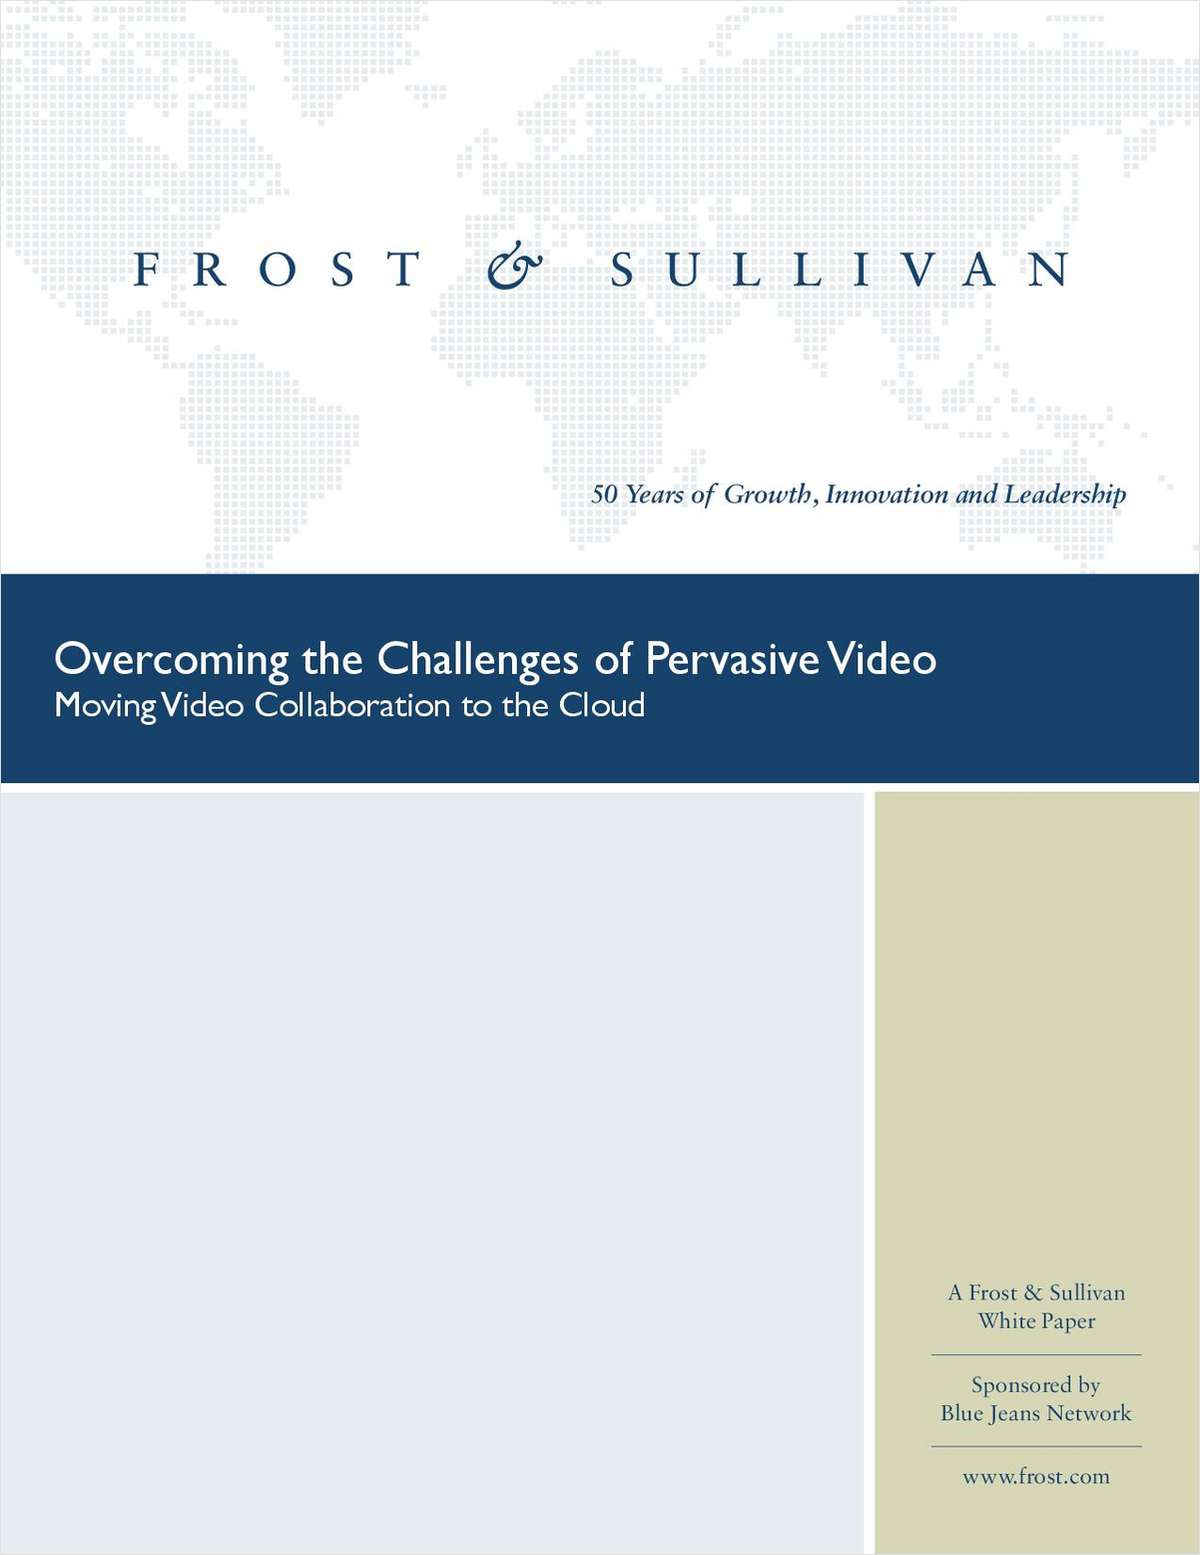 Overcoming the Challenges of Pervasive Video